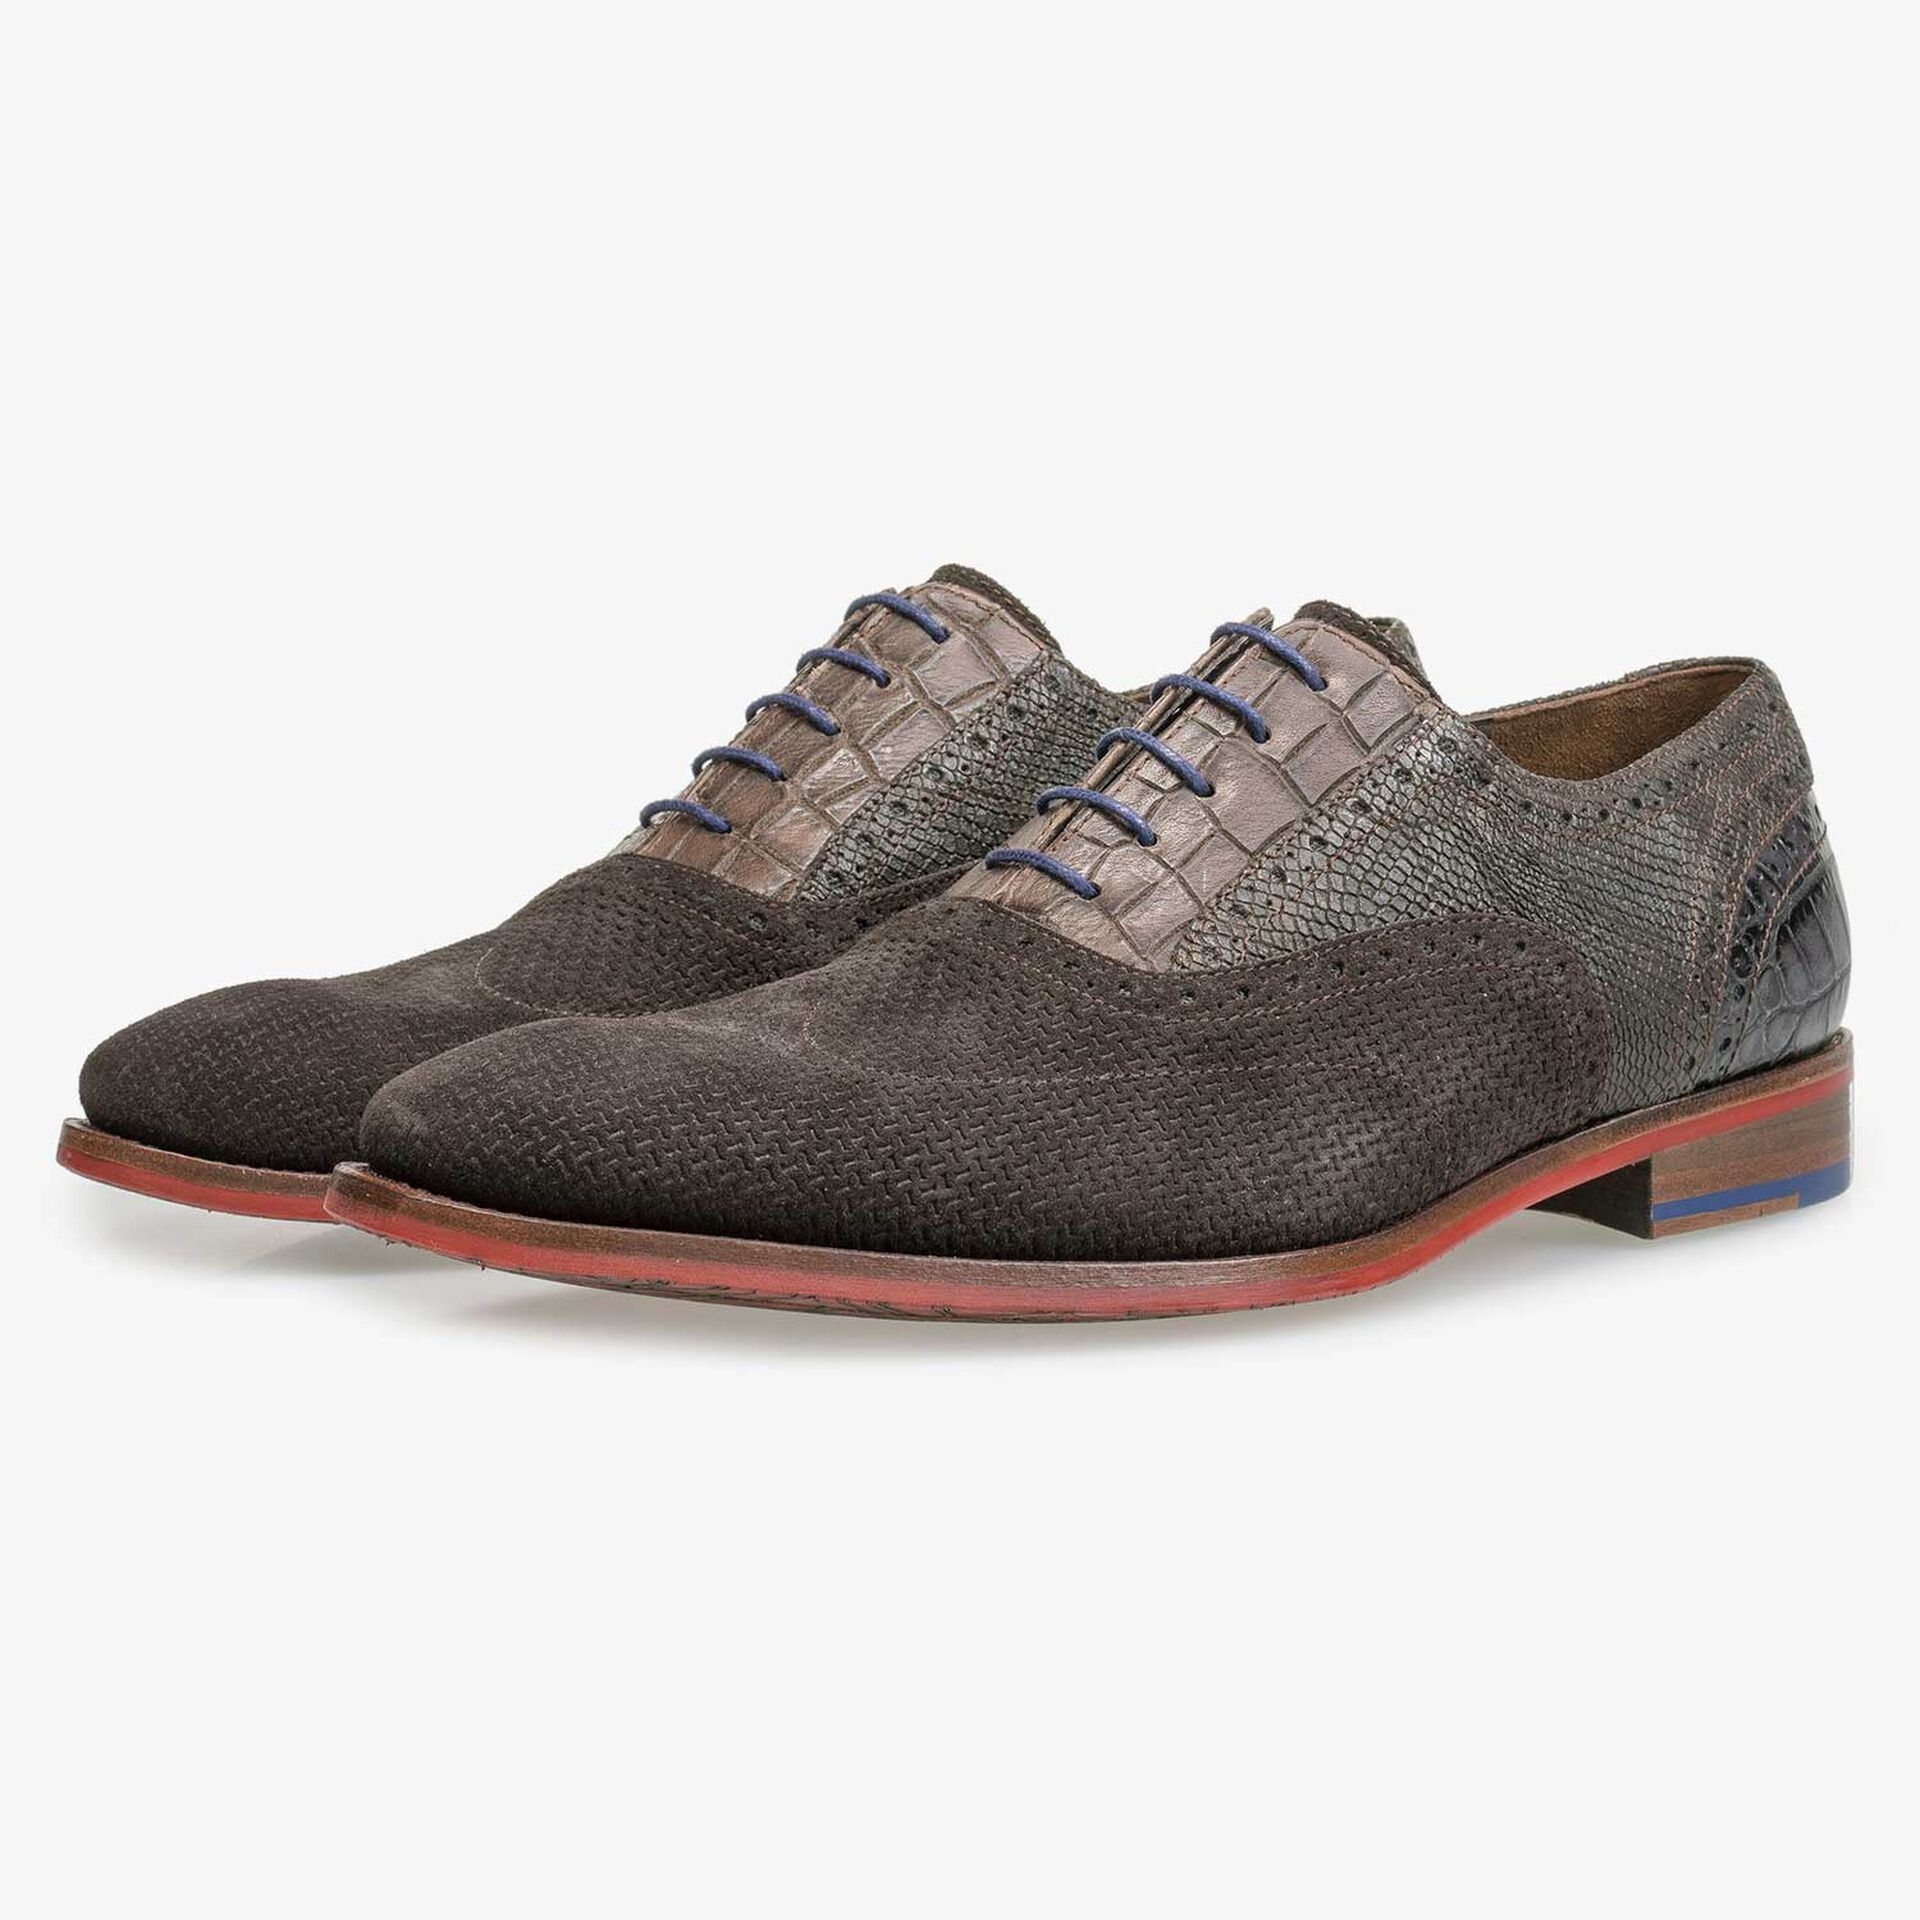 Brown suede leather brogue lace shoe